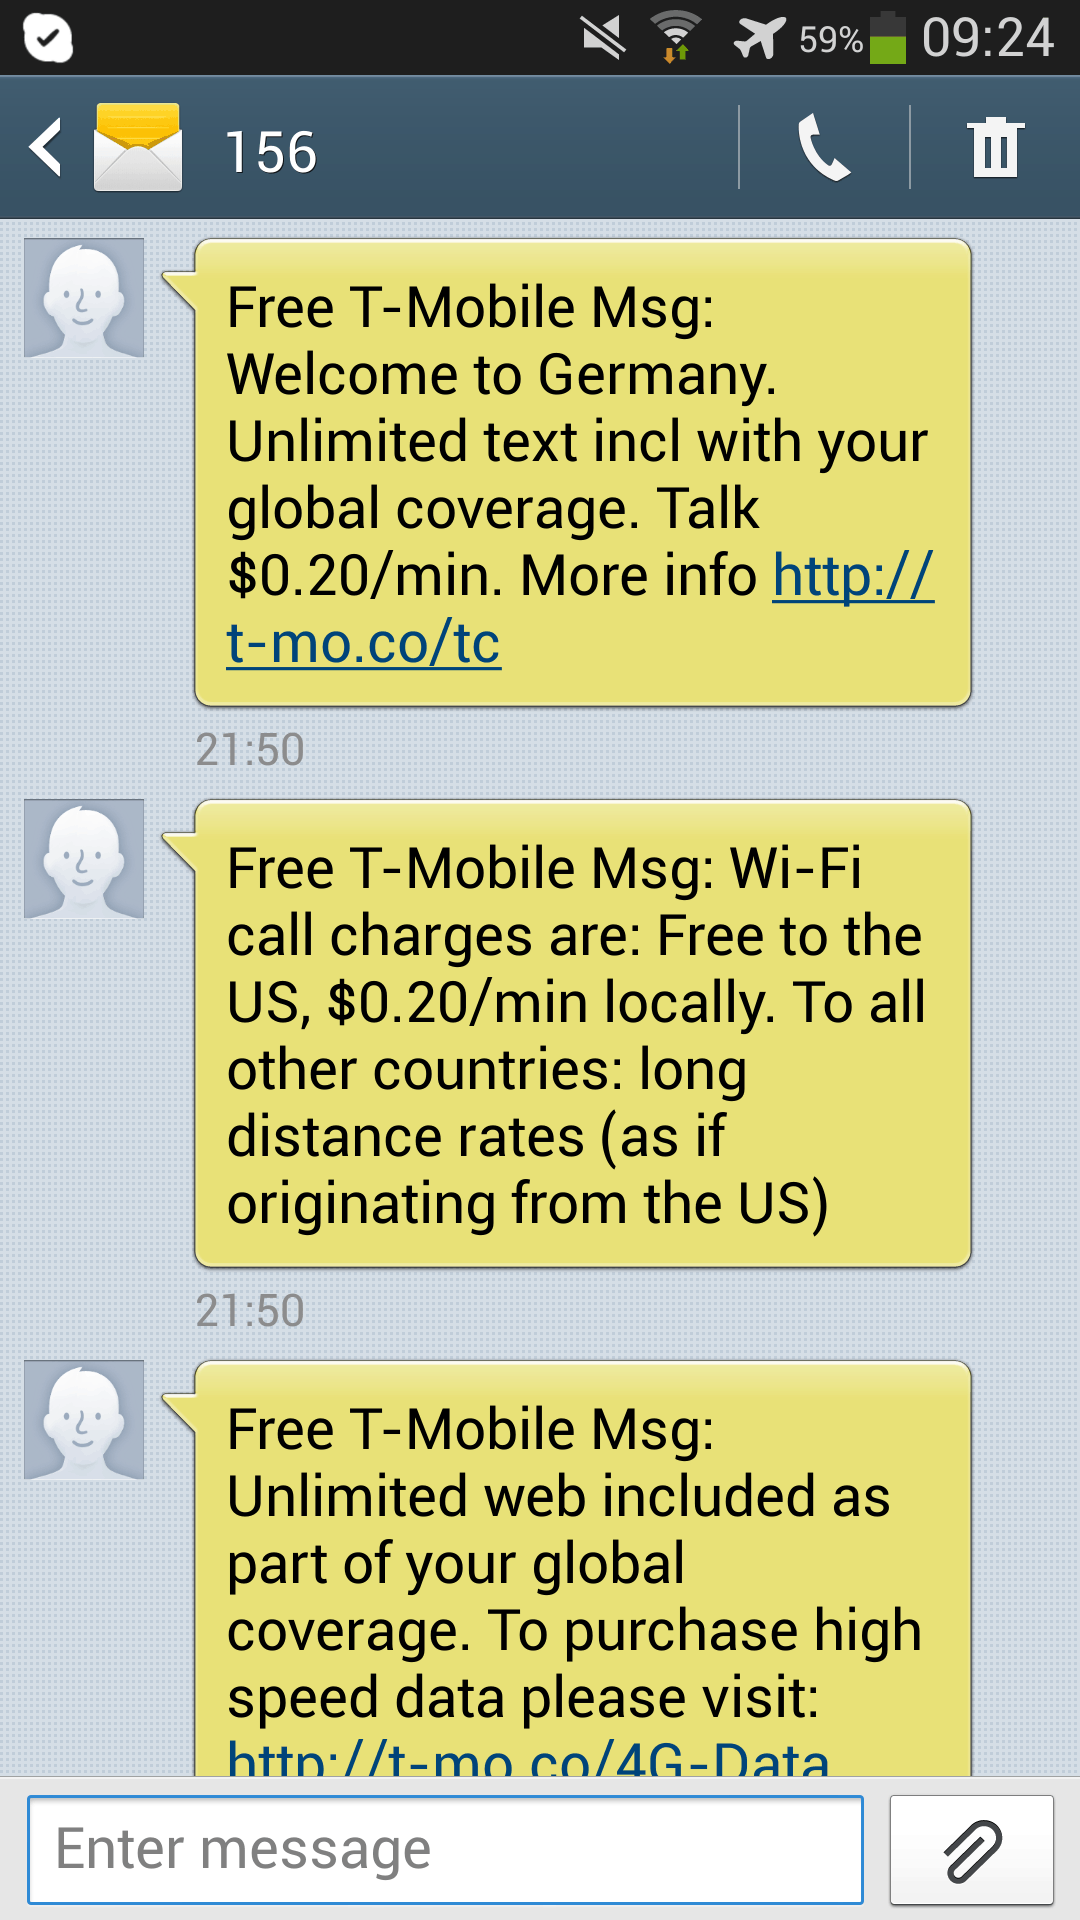 On My T-Mobile, click Usage for an Overview of your usages. For shared plans, click View Shared Usage Details. To see a specific line's usages, click the number under the Minutes or Data column.